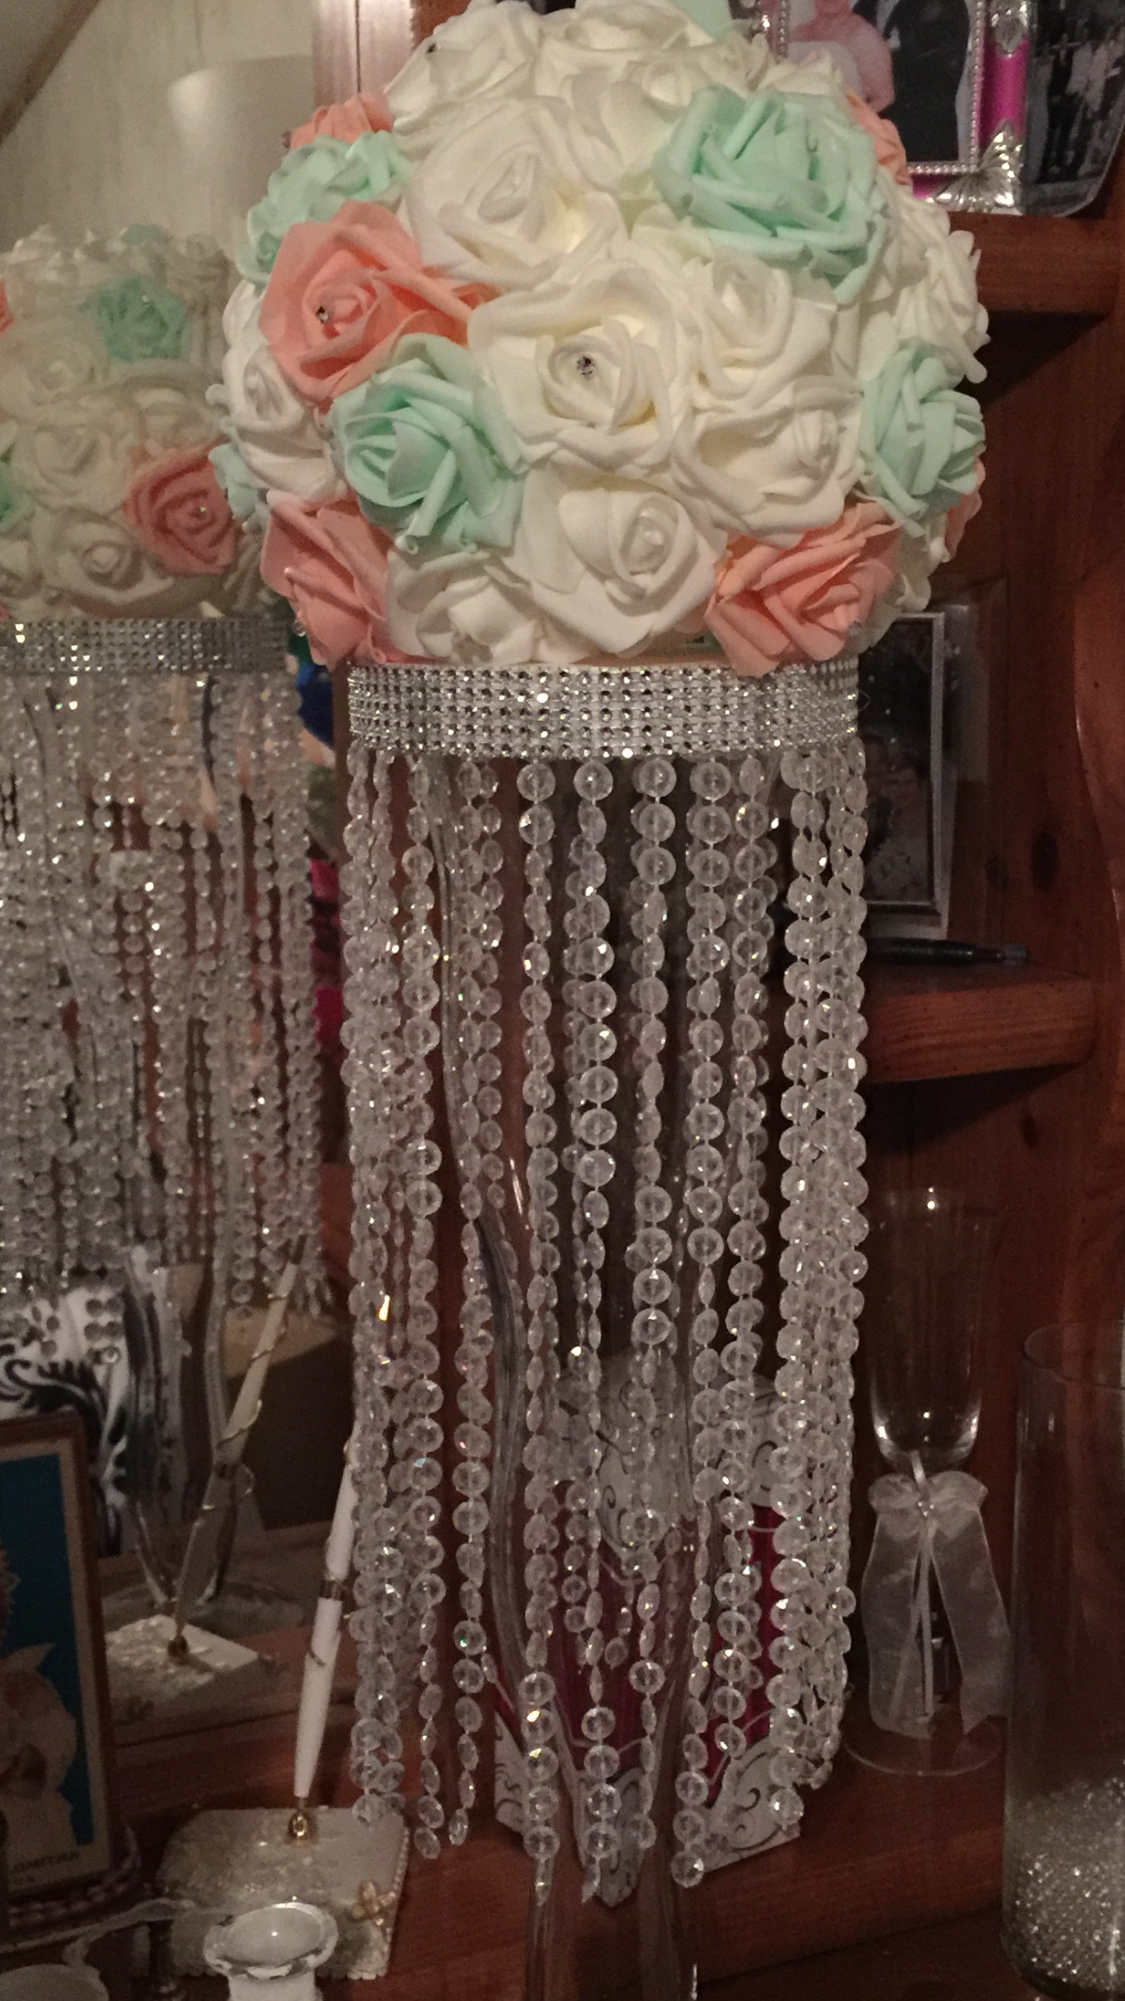 Diy Centerpiece Chandelier With Foam Rose Heads For Quinceanera